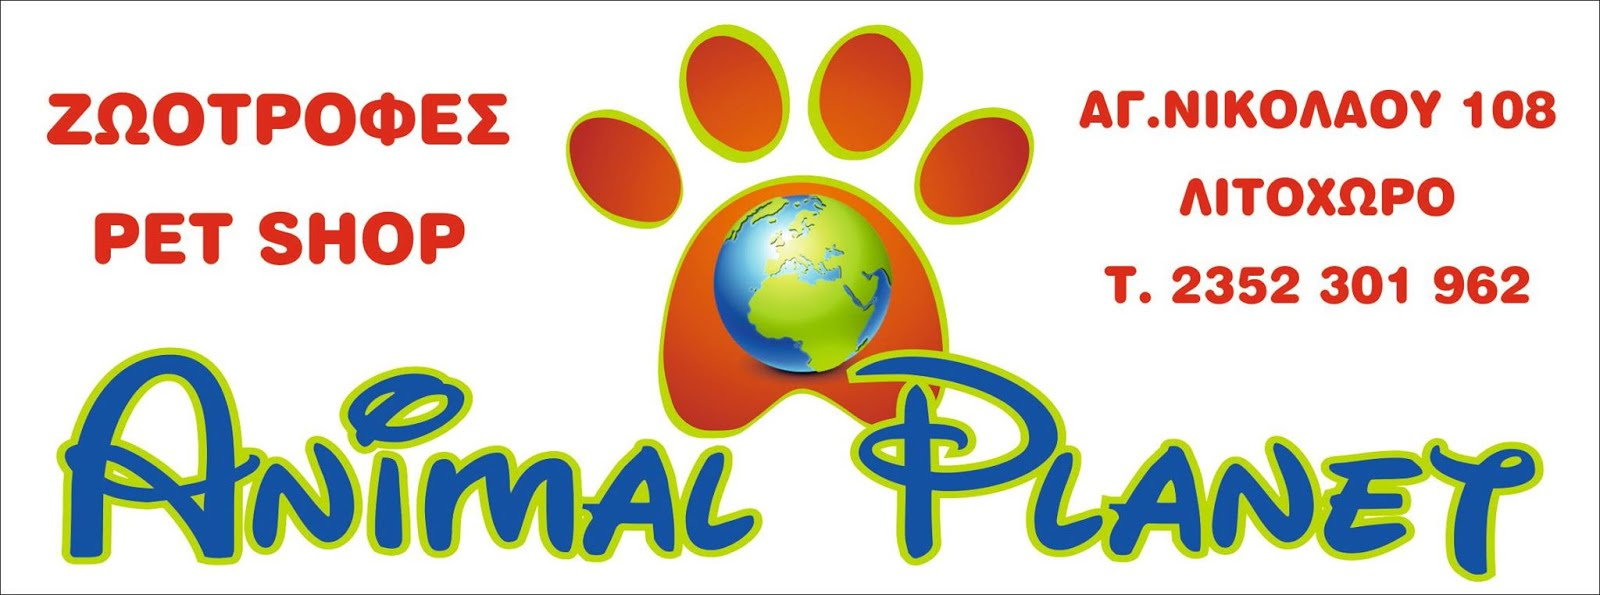 PET SHOP ANIMAL PLANET